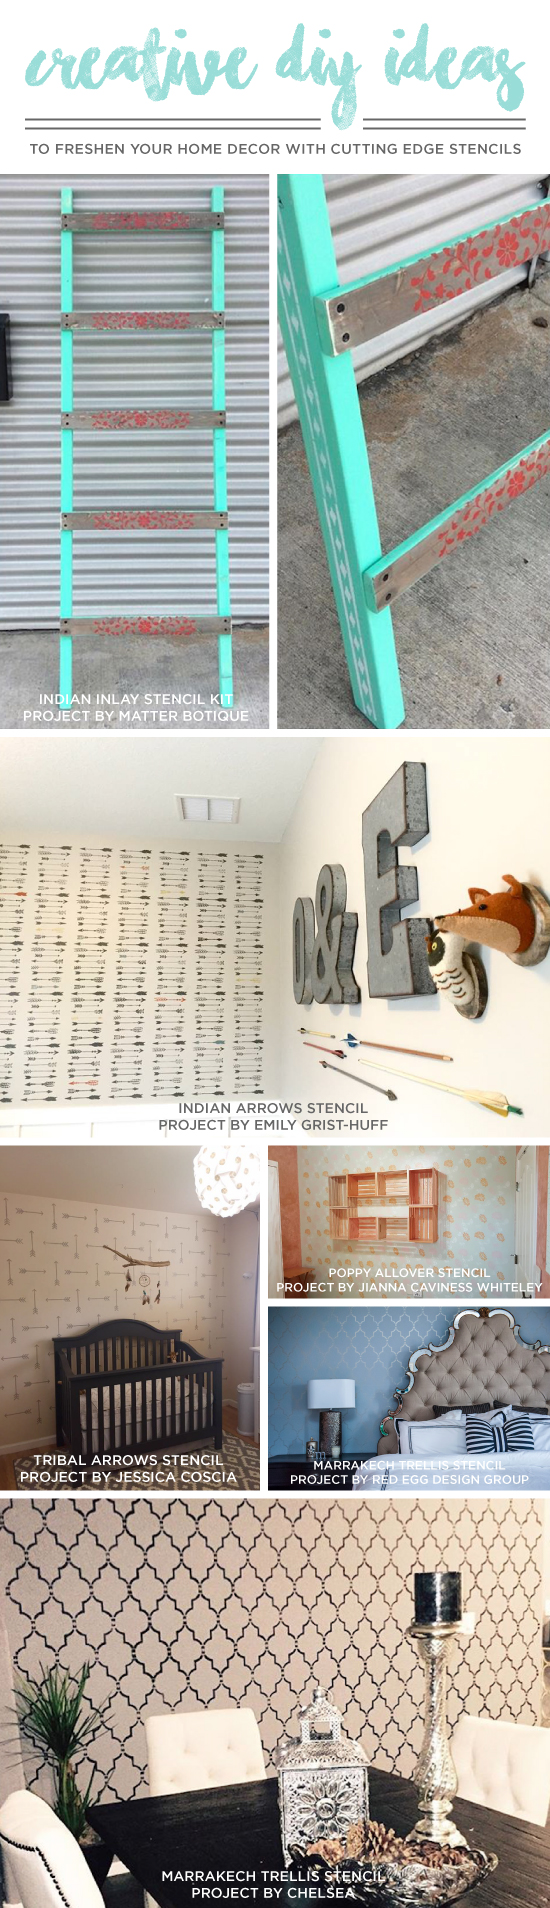 Cutting Edge Stencils shares quick and easy home decorprojects using stencils. http://www.cuttingedgestencils.com/wall-stencils.html